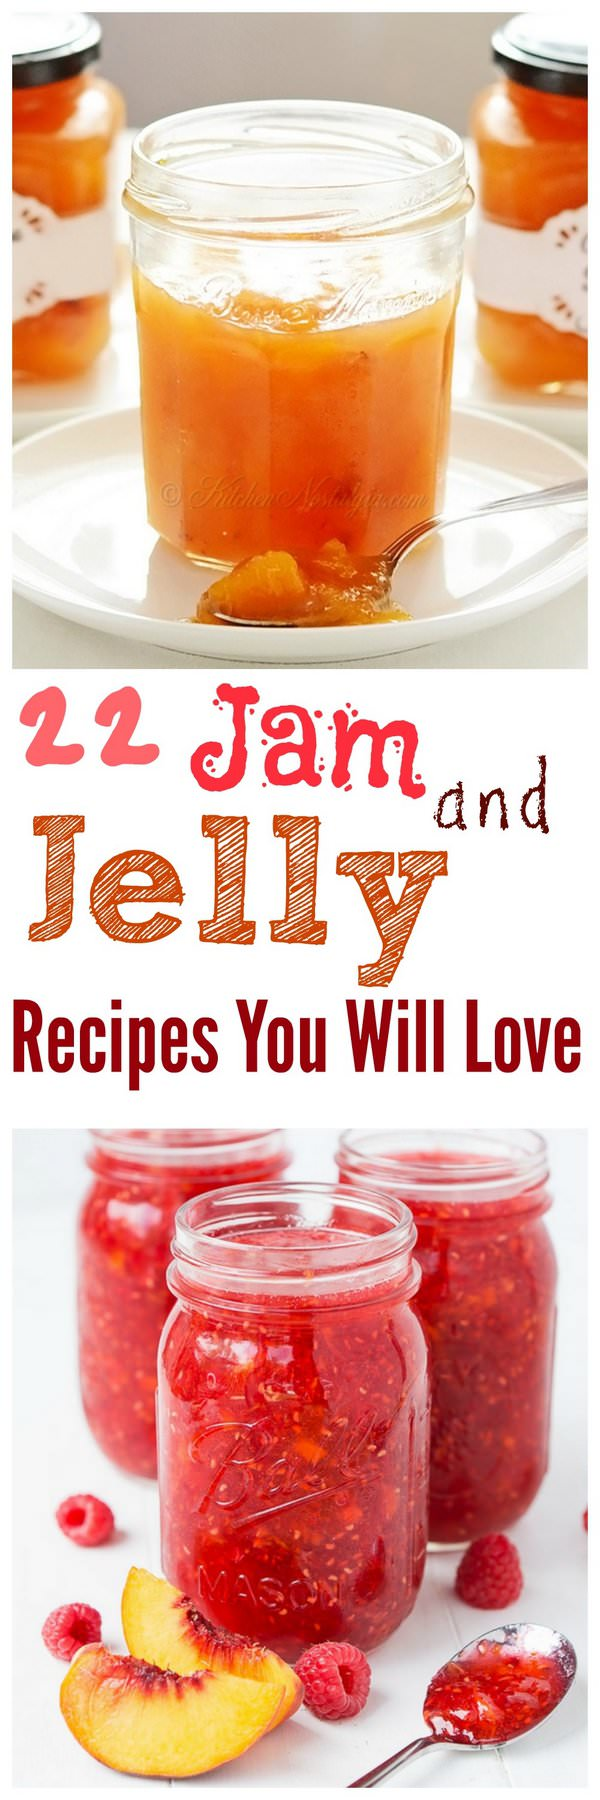 Learn about the 22 Homemade Jam and Jelly recipes that are perfect, taste great and you can't resist making!